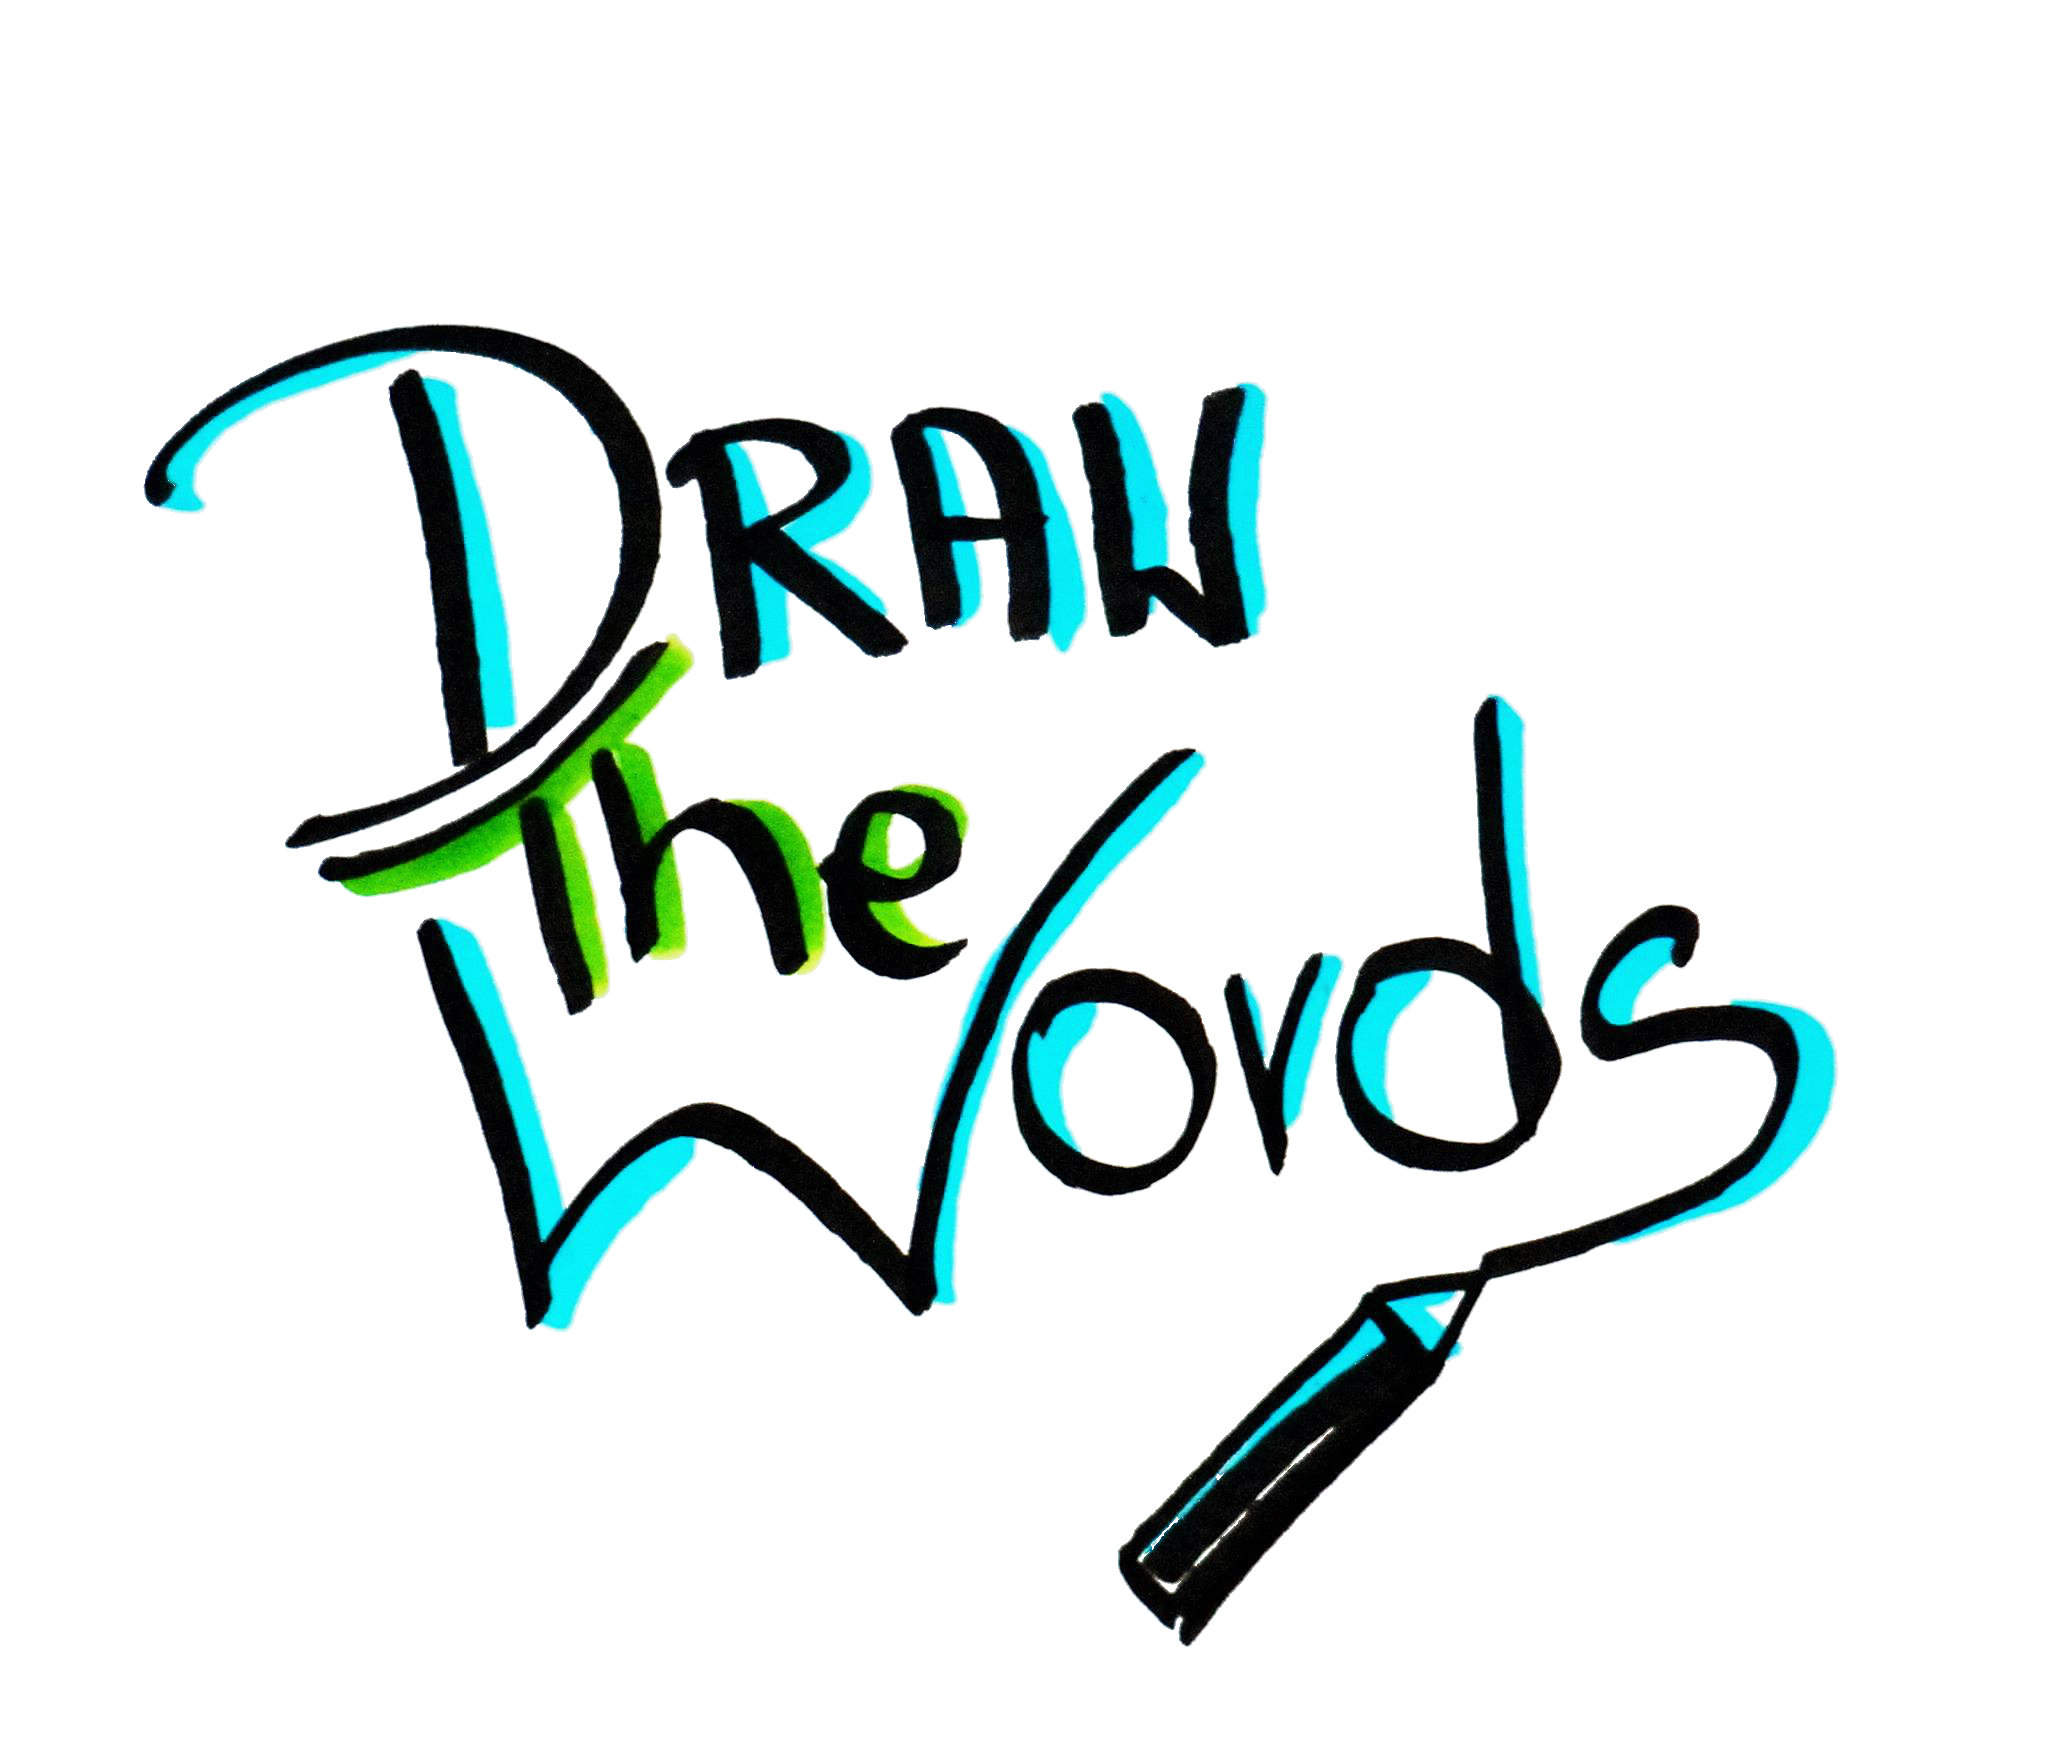 Draw the words